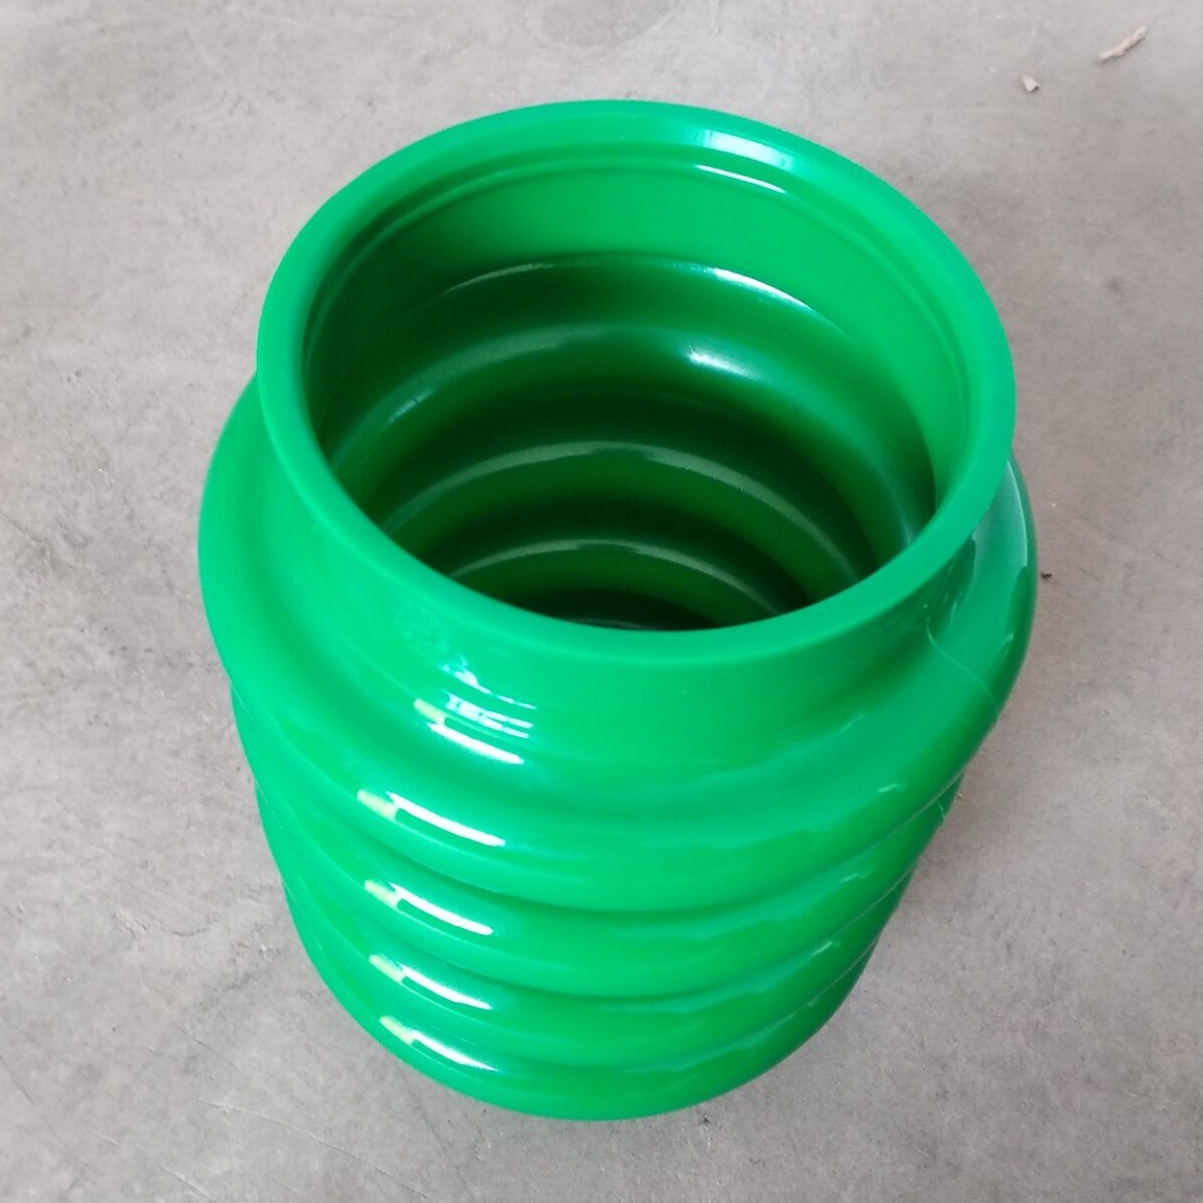 Free Shipping Wacker Rammer Bellow Wacker BS600, BS700 OEM 1006882 Corrugated Pipe Concrete Machinery Parts